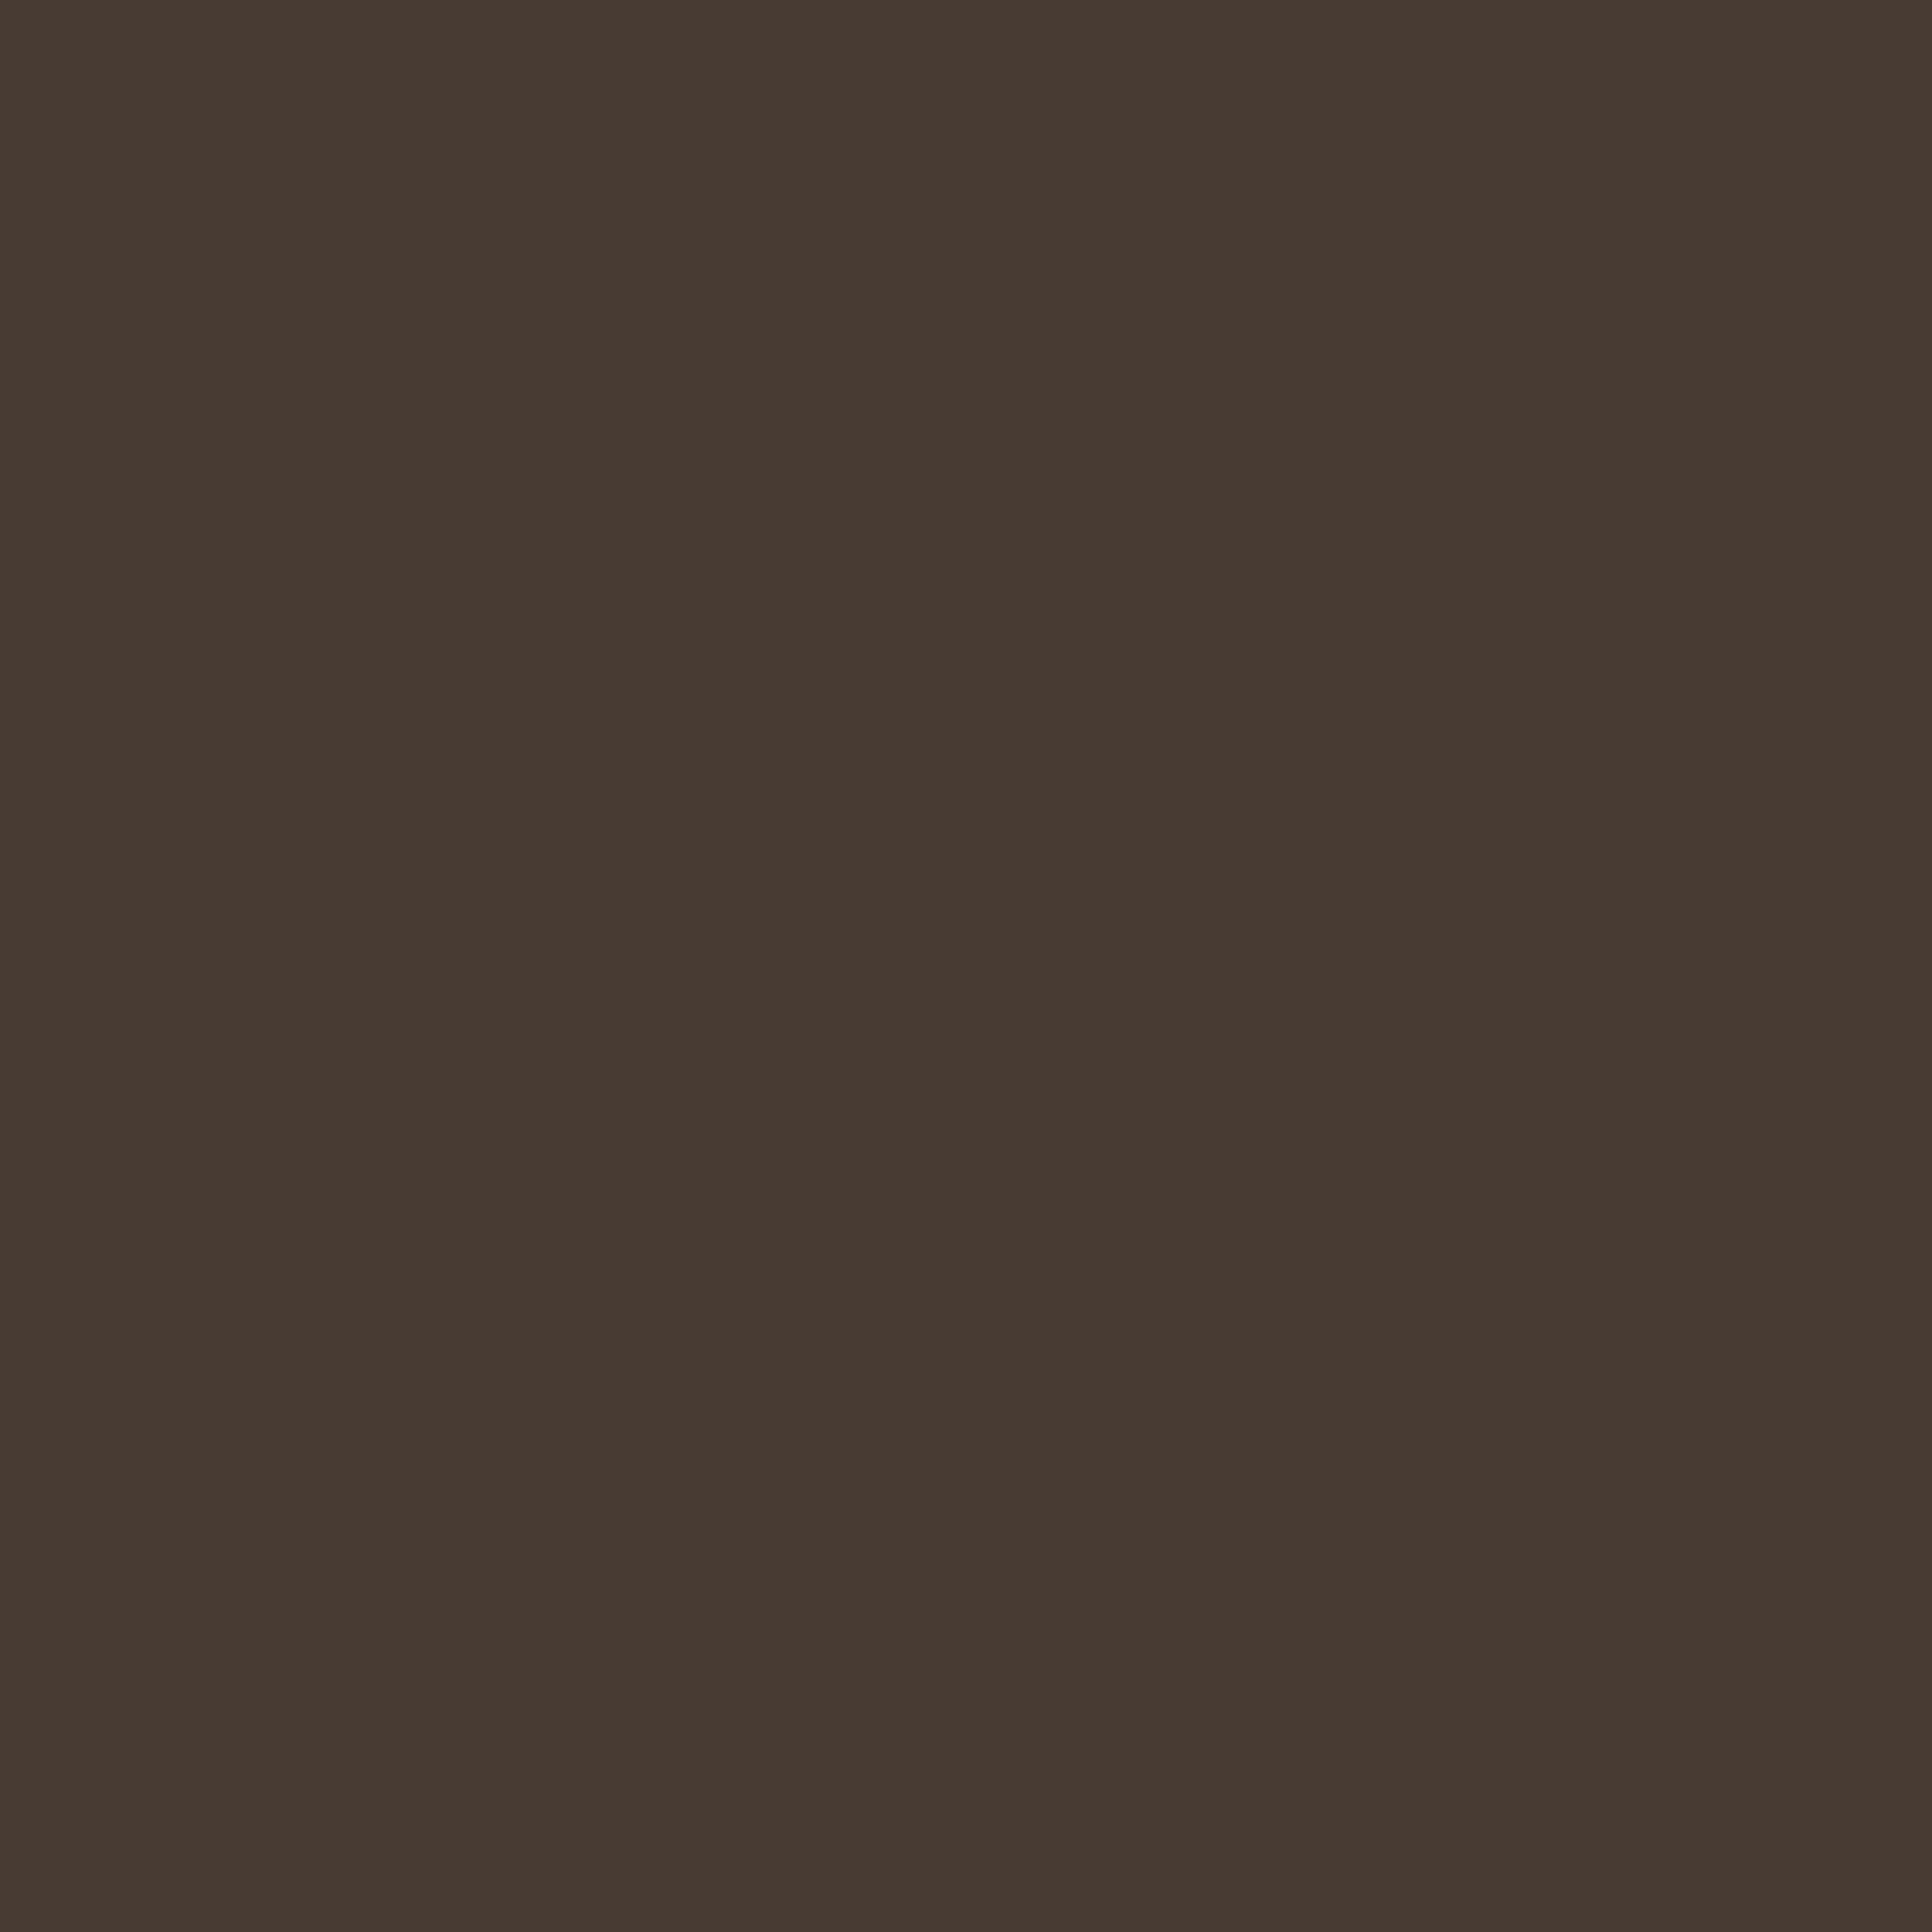 2732x2732 Dark Taupe Solid Color Background